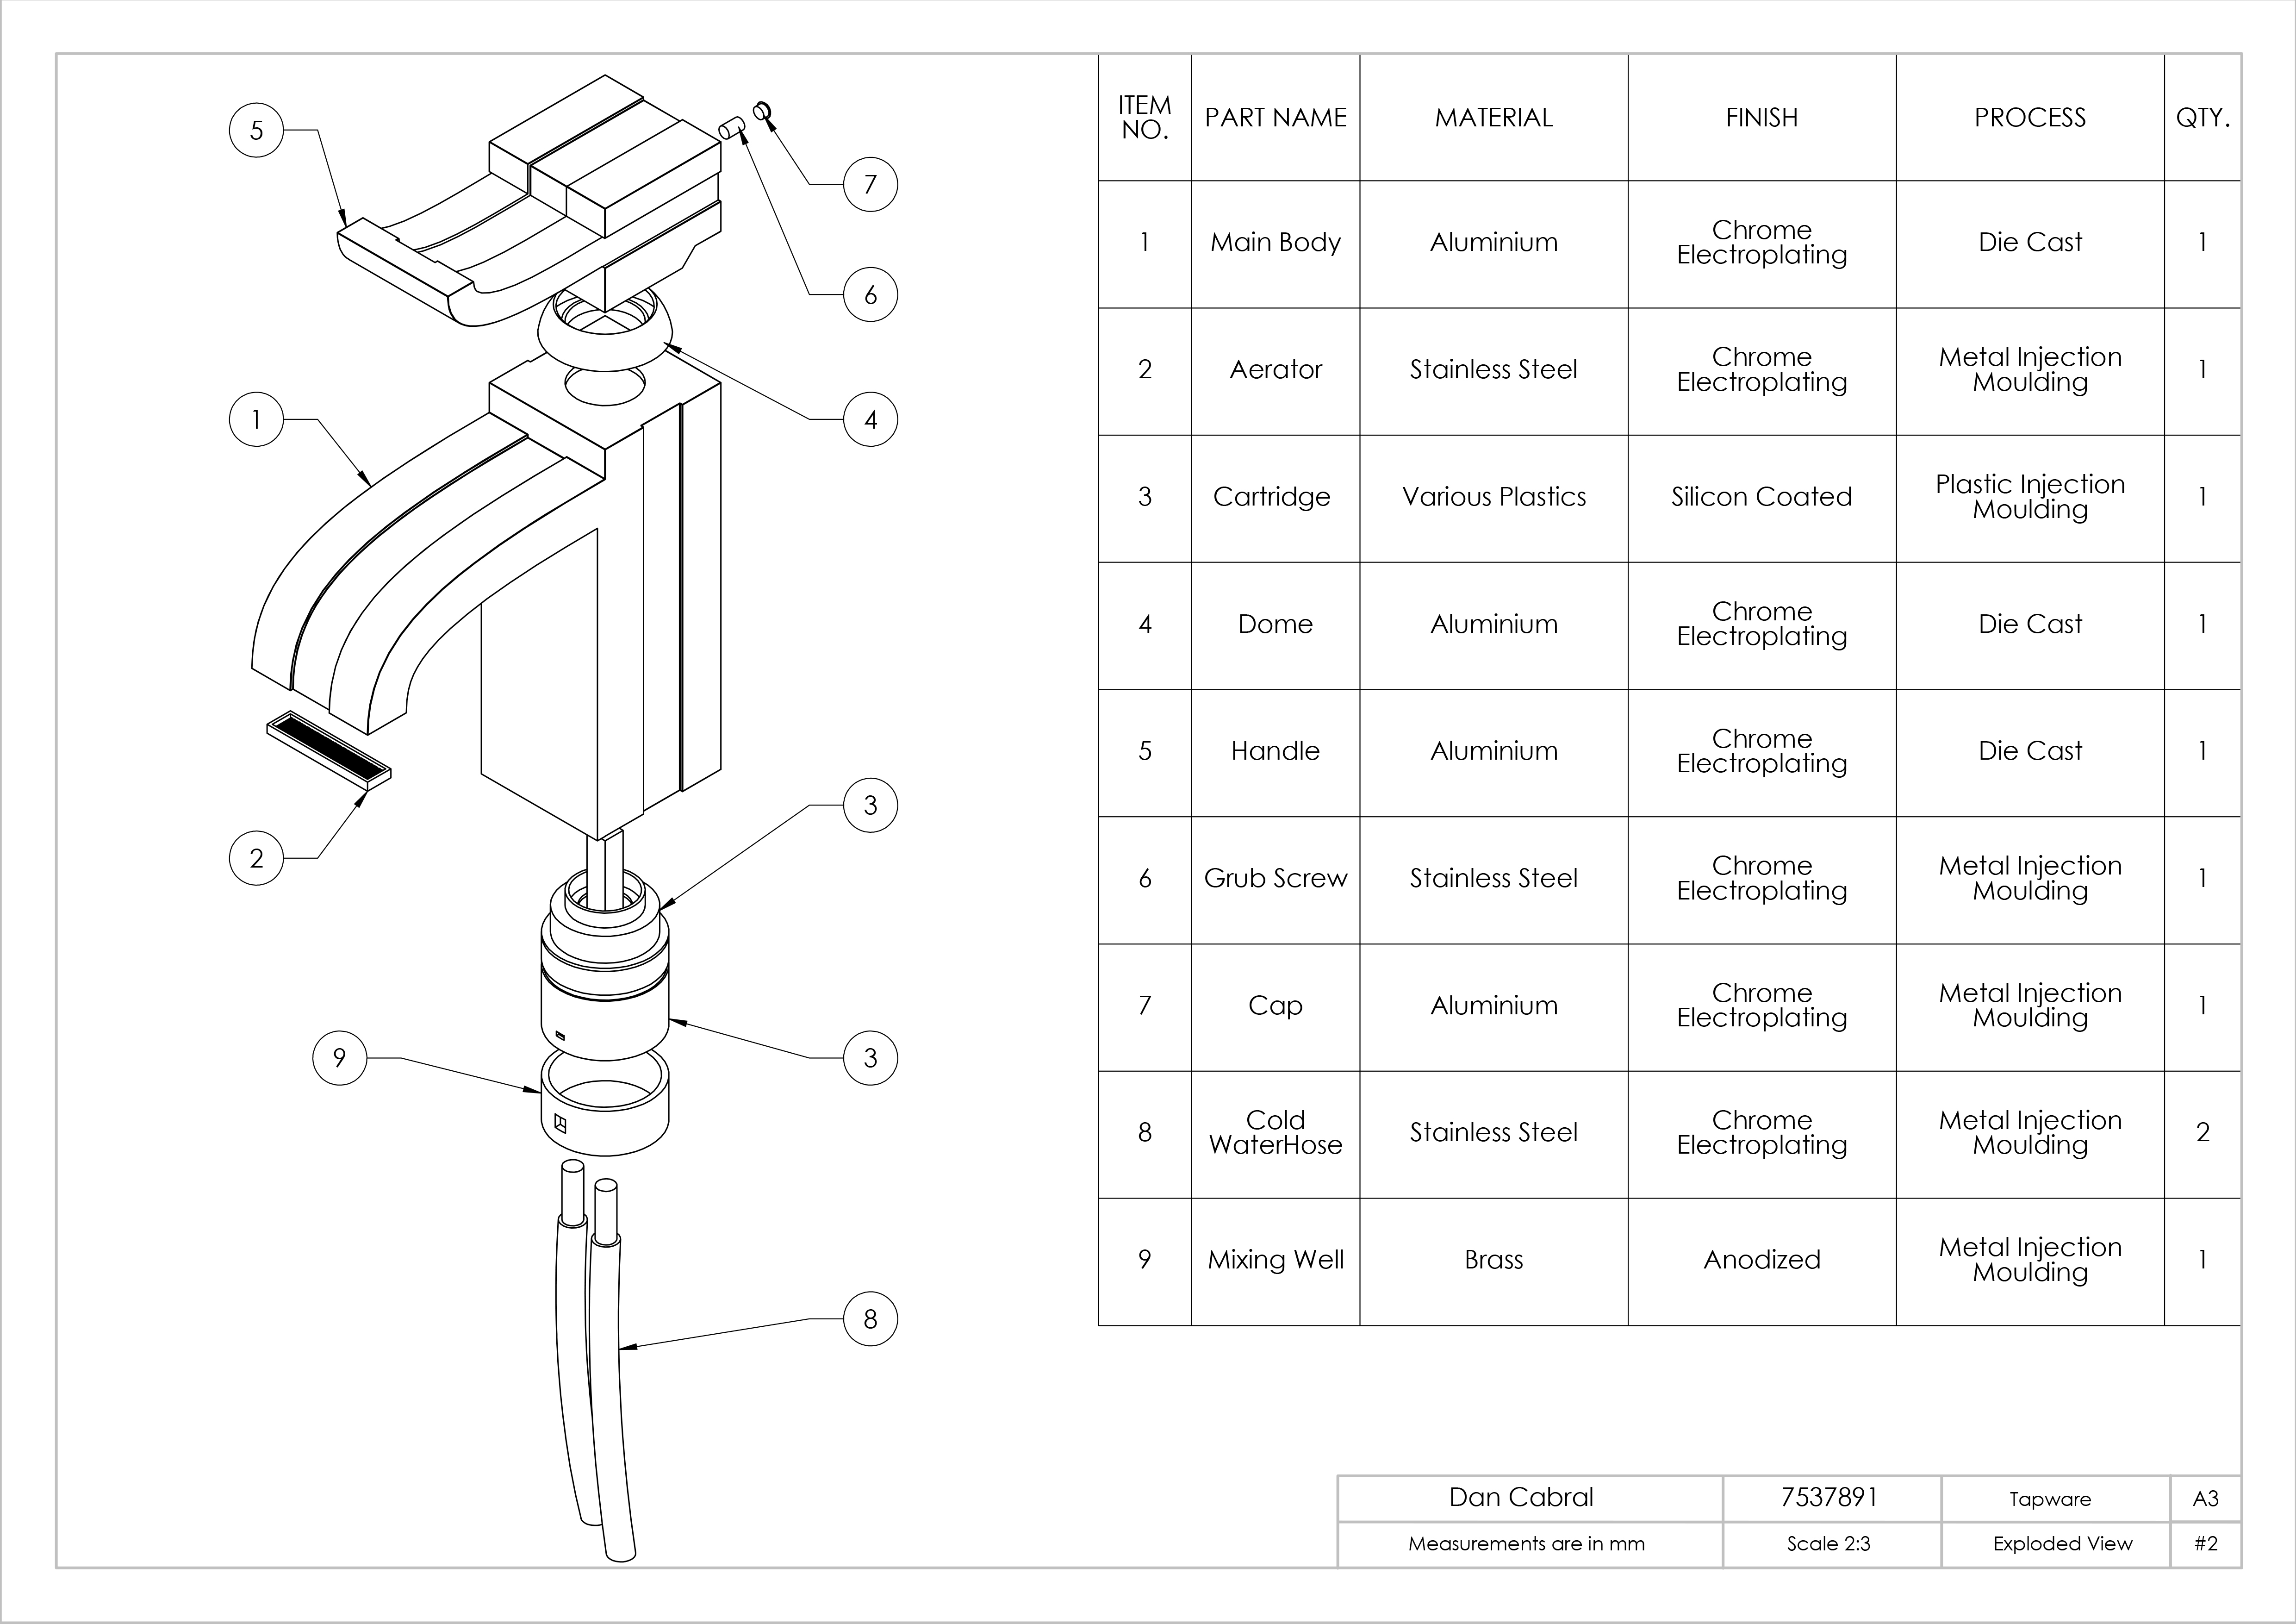 Final Tap Technical Drawings-2